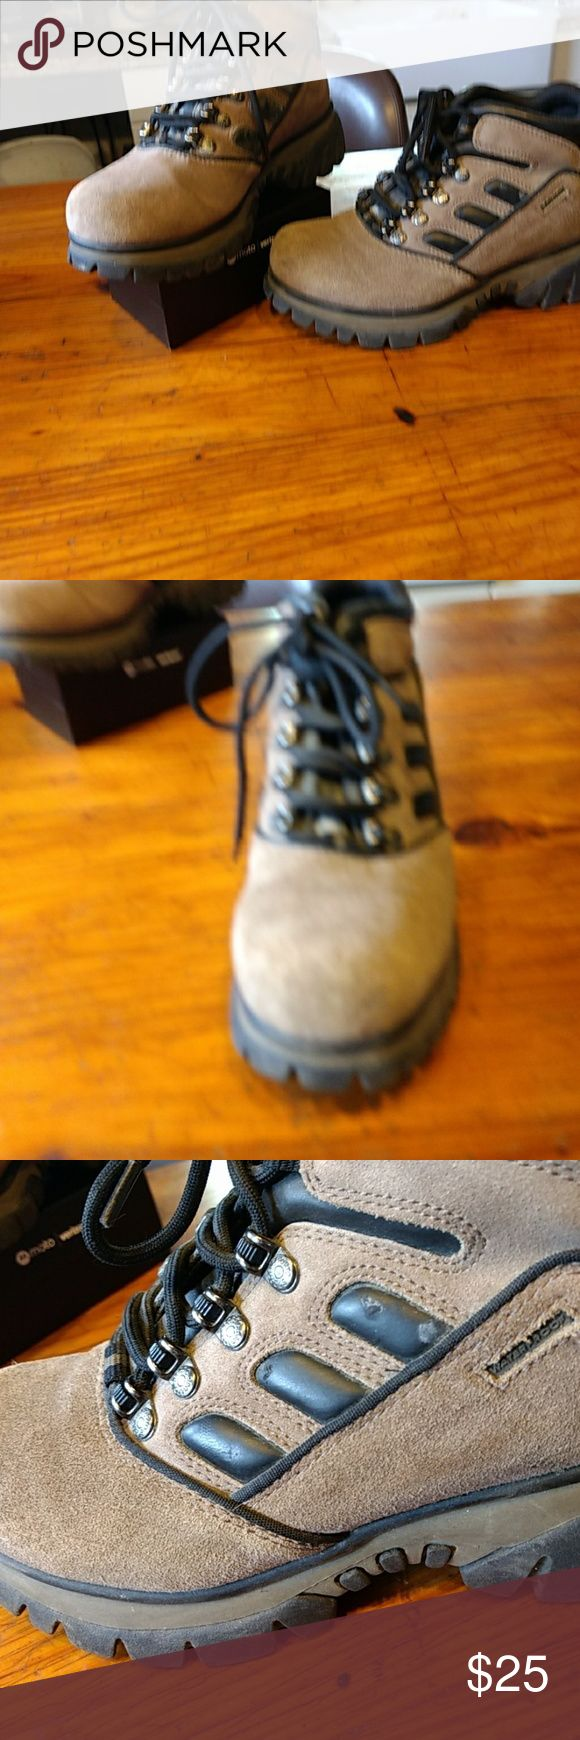 Sporto Hiking Boot Black leather trim, light brown suede.  The bottoms are great for many outdoor sports.  Black& silver metal logo on back of boots.  They are lace up secured by tiny silver rivets.  The leather on inside of both tongues are worn.  The sides & back are covered with material that makes feet breathable.  Because of damage to inside part where you lace up, I have to let go low.  And believe me, they were worth the price I paid. Sporto Shoes Combat & Moto Boots